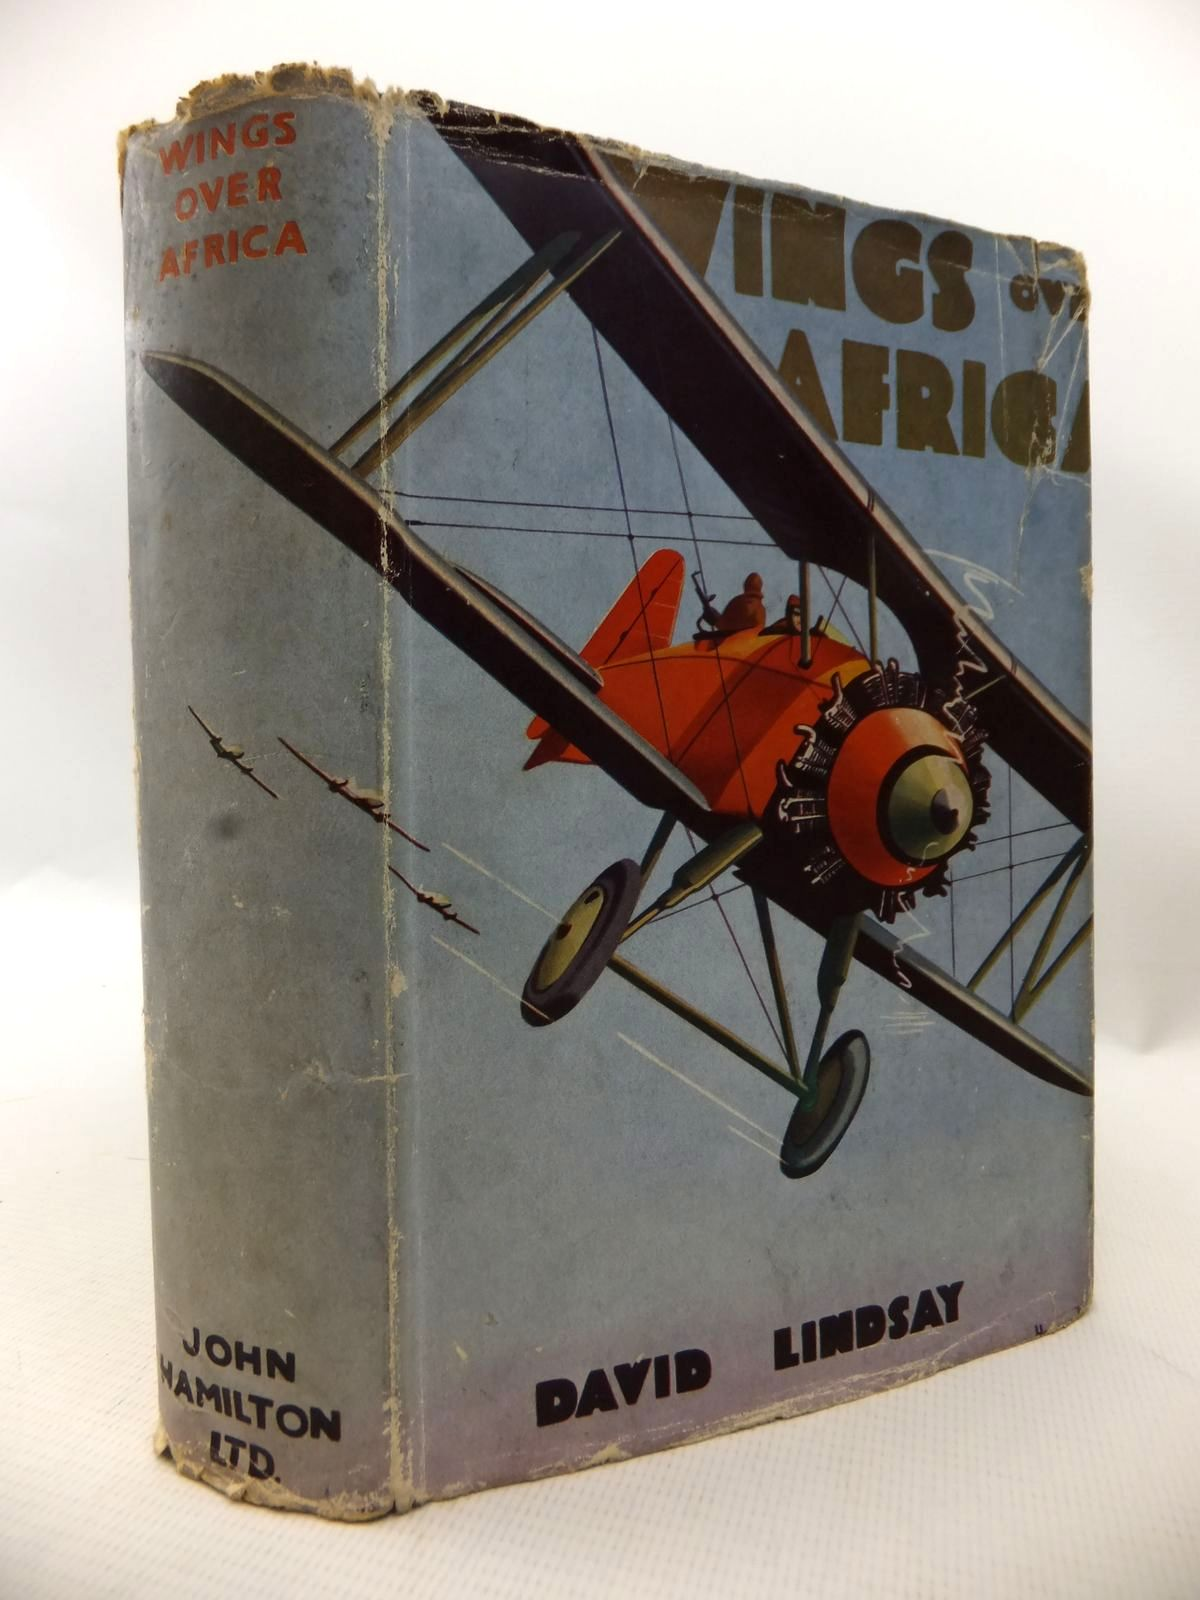 Photo of WINGS OVER AFRICA written by Lindsay, David published by John Hamilton Ltd. (STOCK CODE: 1813851)  for sale by Stella & Rose's Books